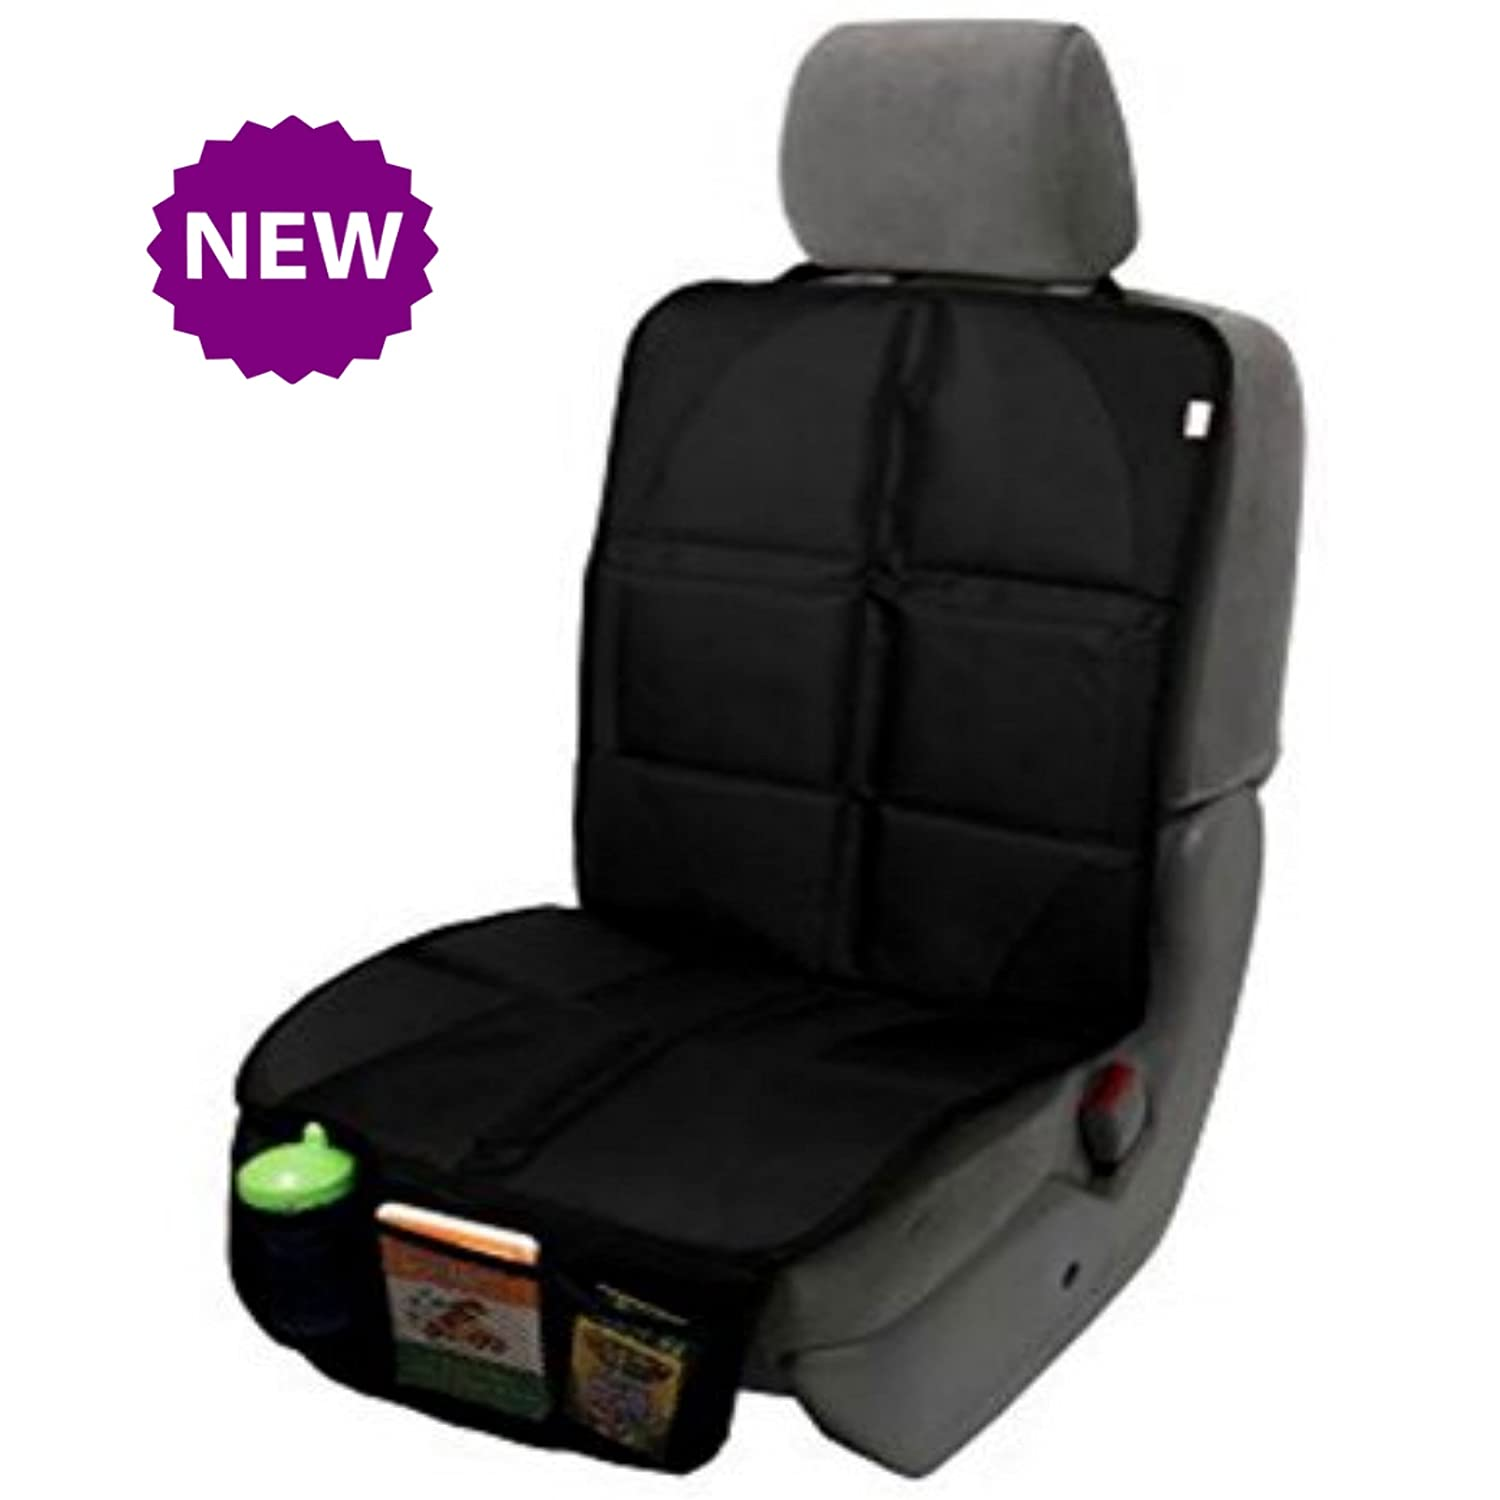 Ridez 5th Dimension Car Seat Protector Keeps Upholstery Leather From Getting Ripped by Booster Seats Baby Infant Carriers (blue) SunCorp